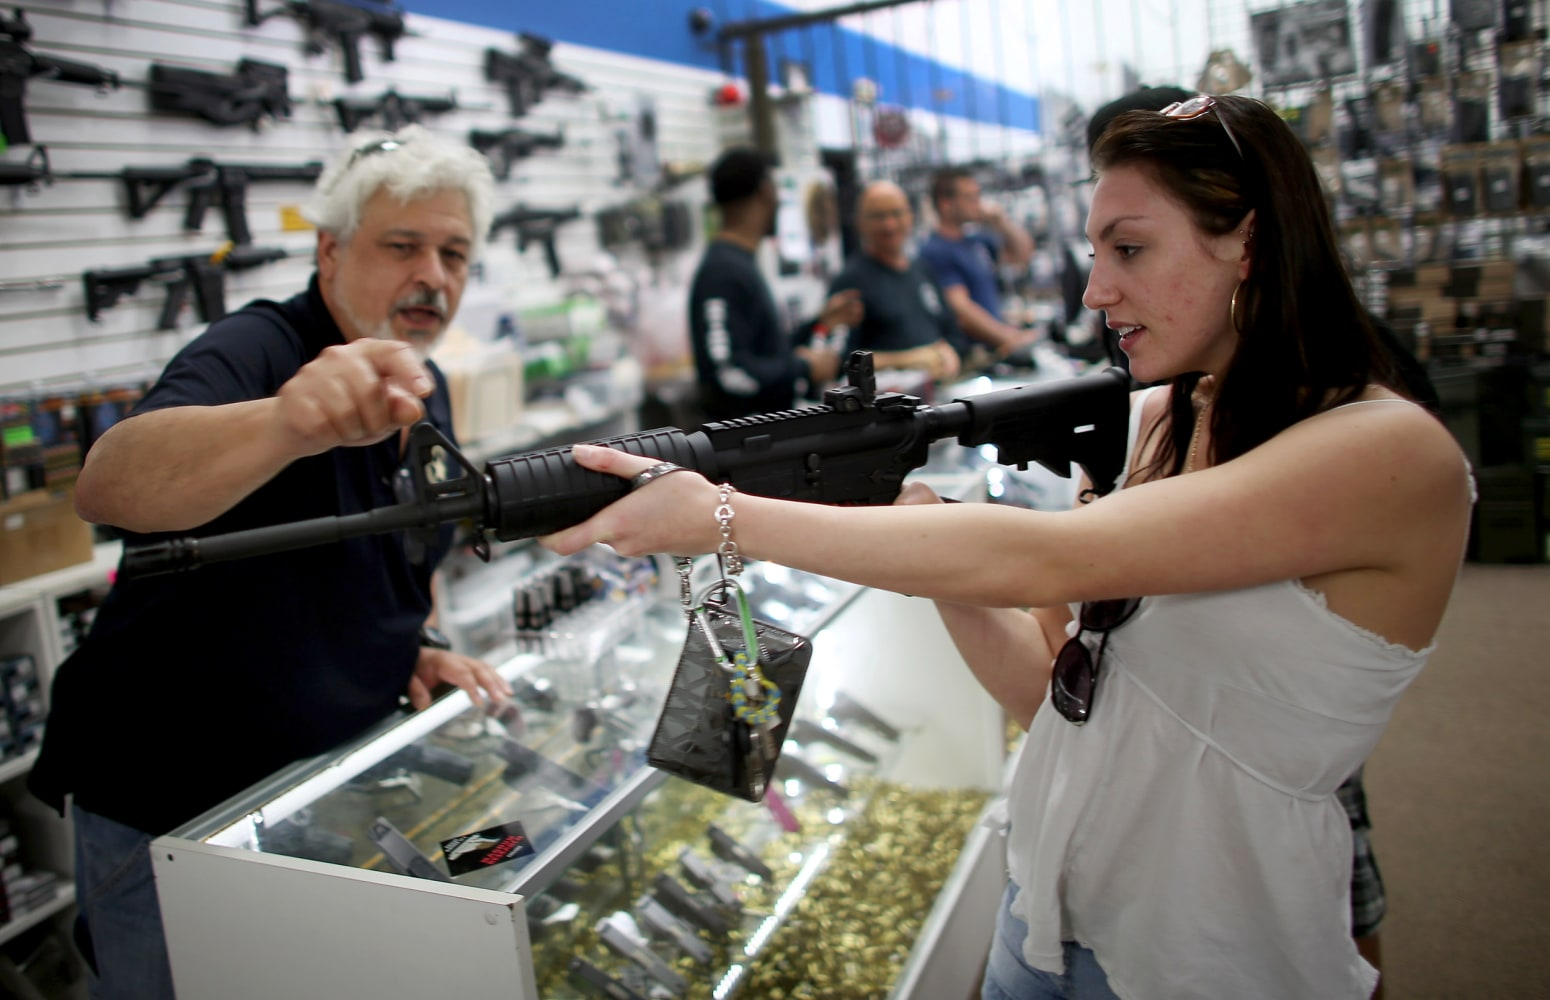 Federal Bureau of Investigation  conducted over 200000 gun background checks on Black Friday